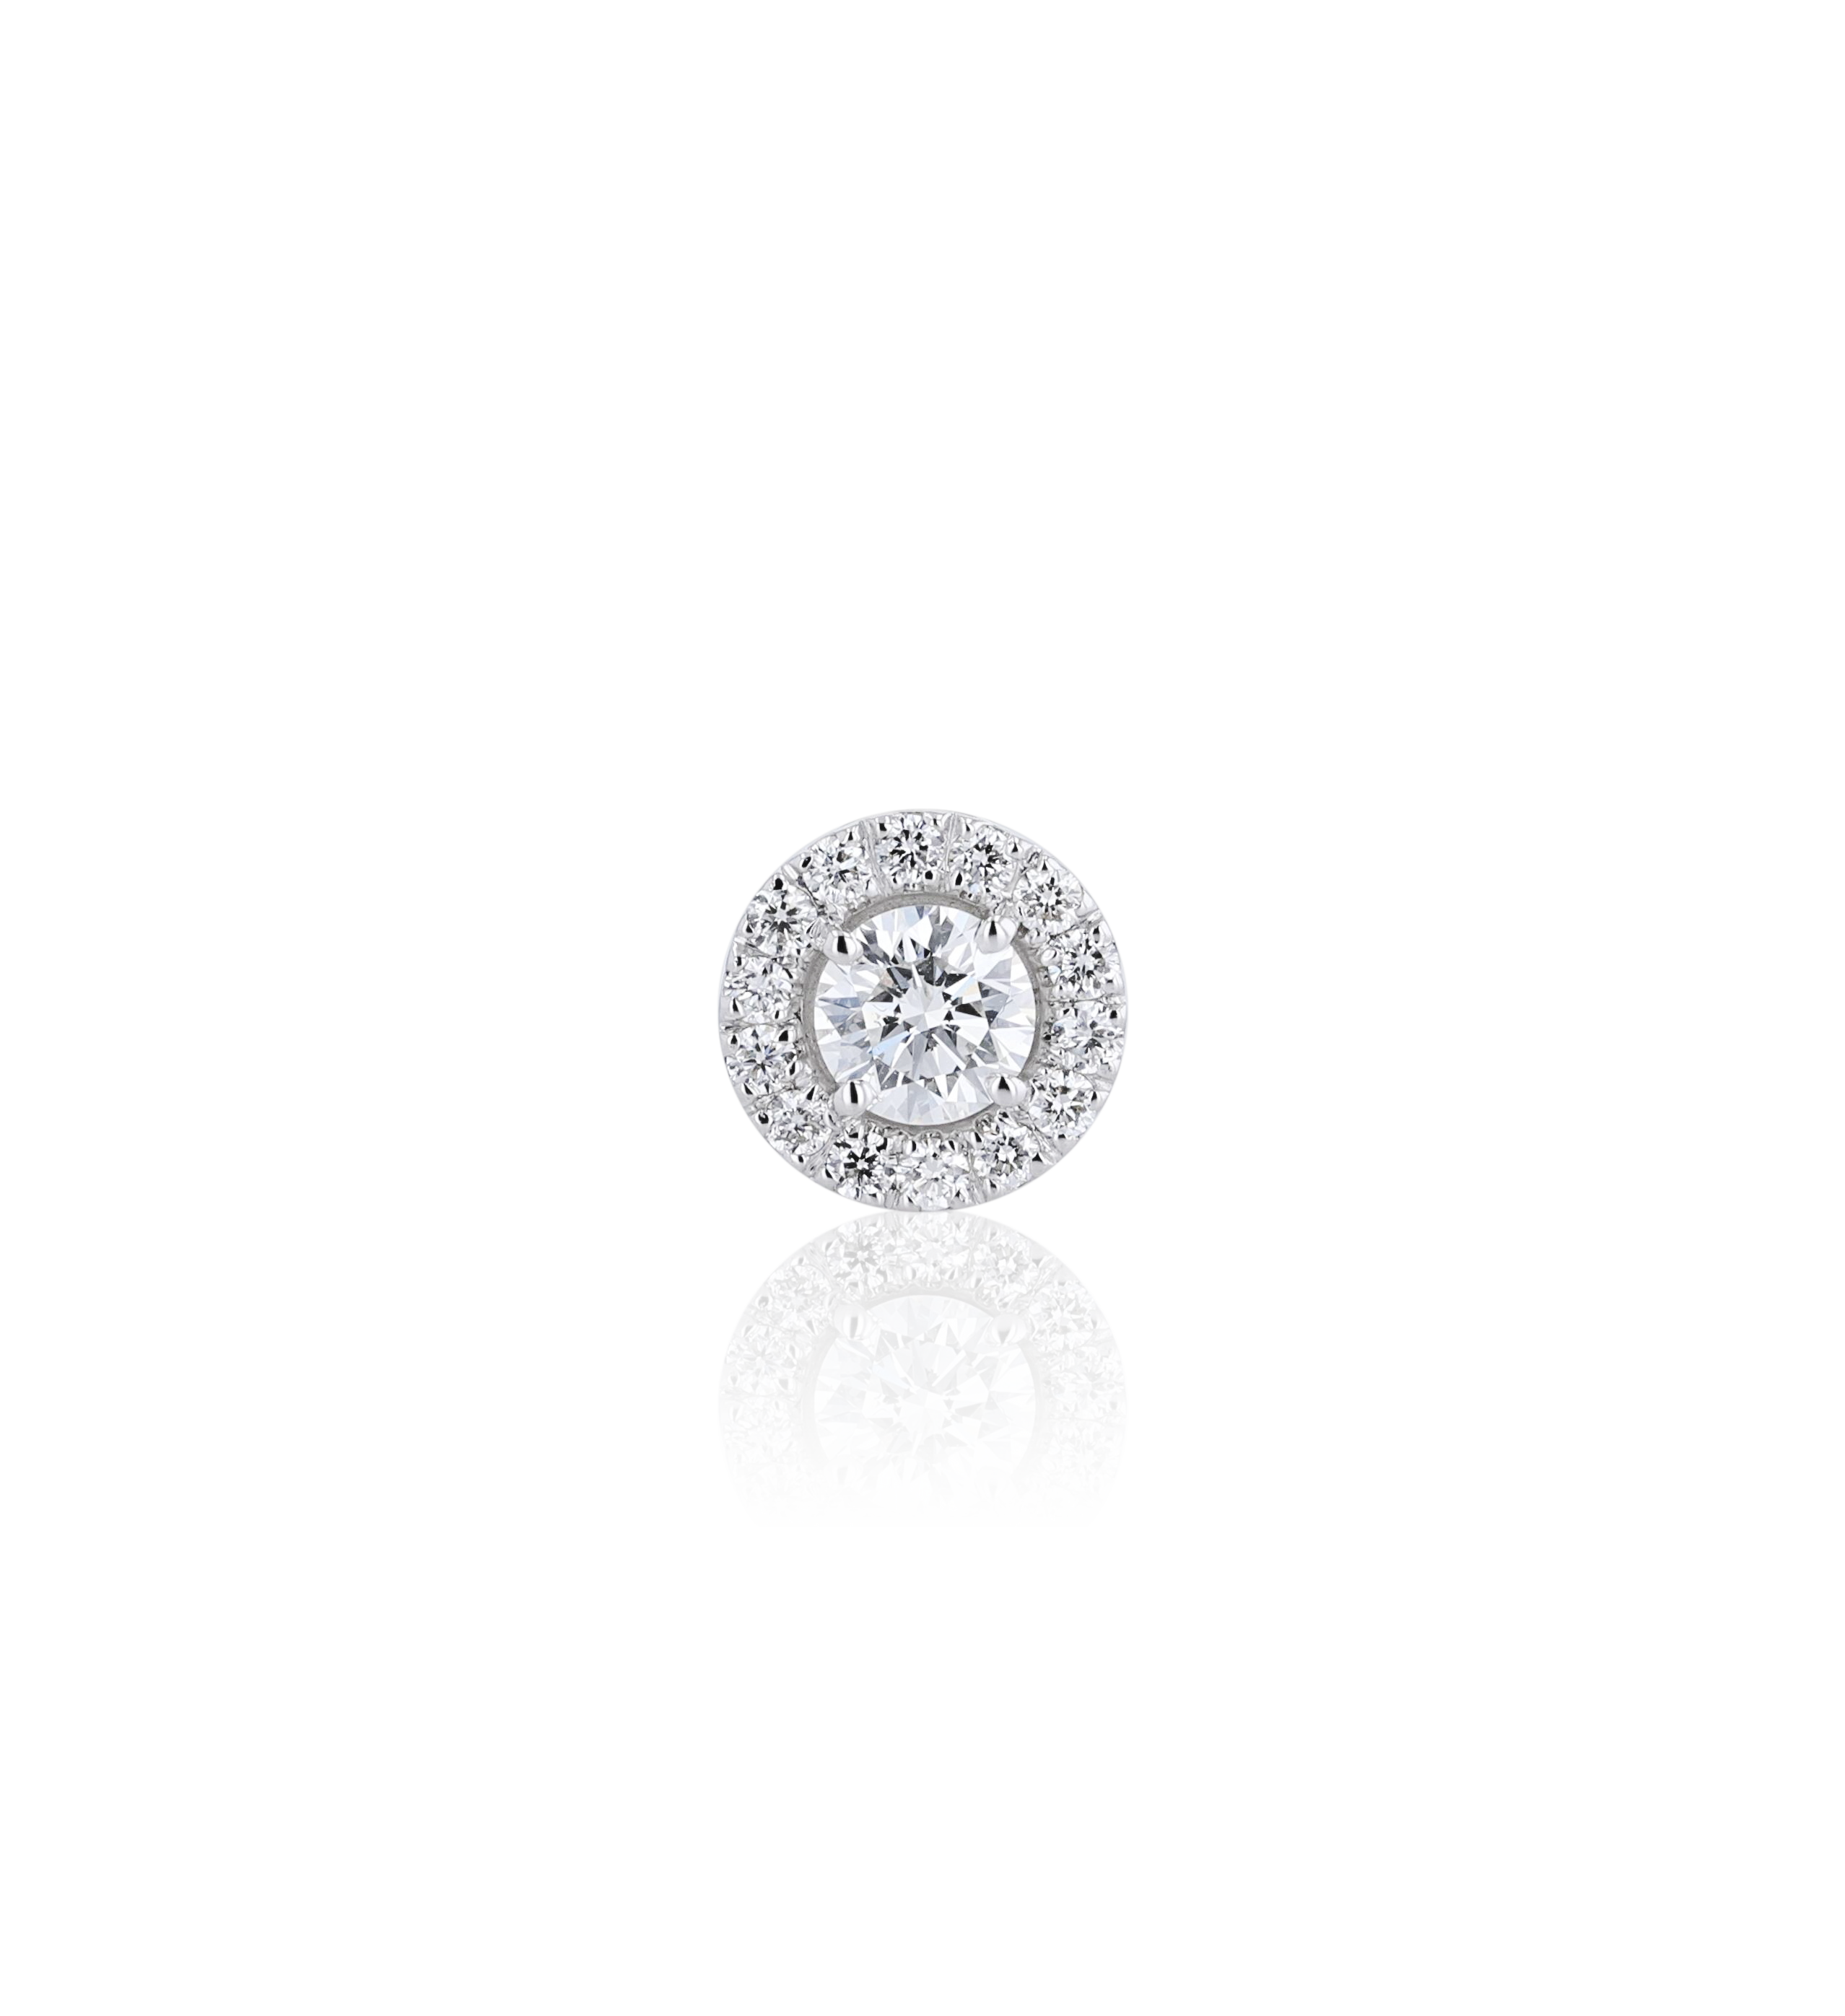 Halo Round Diamond Stud Earrings in 18K White Gold 0.70 CT